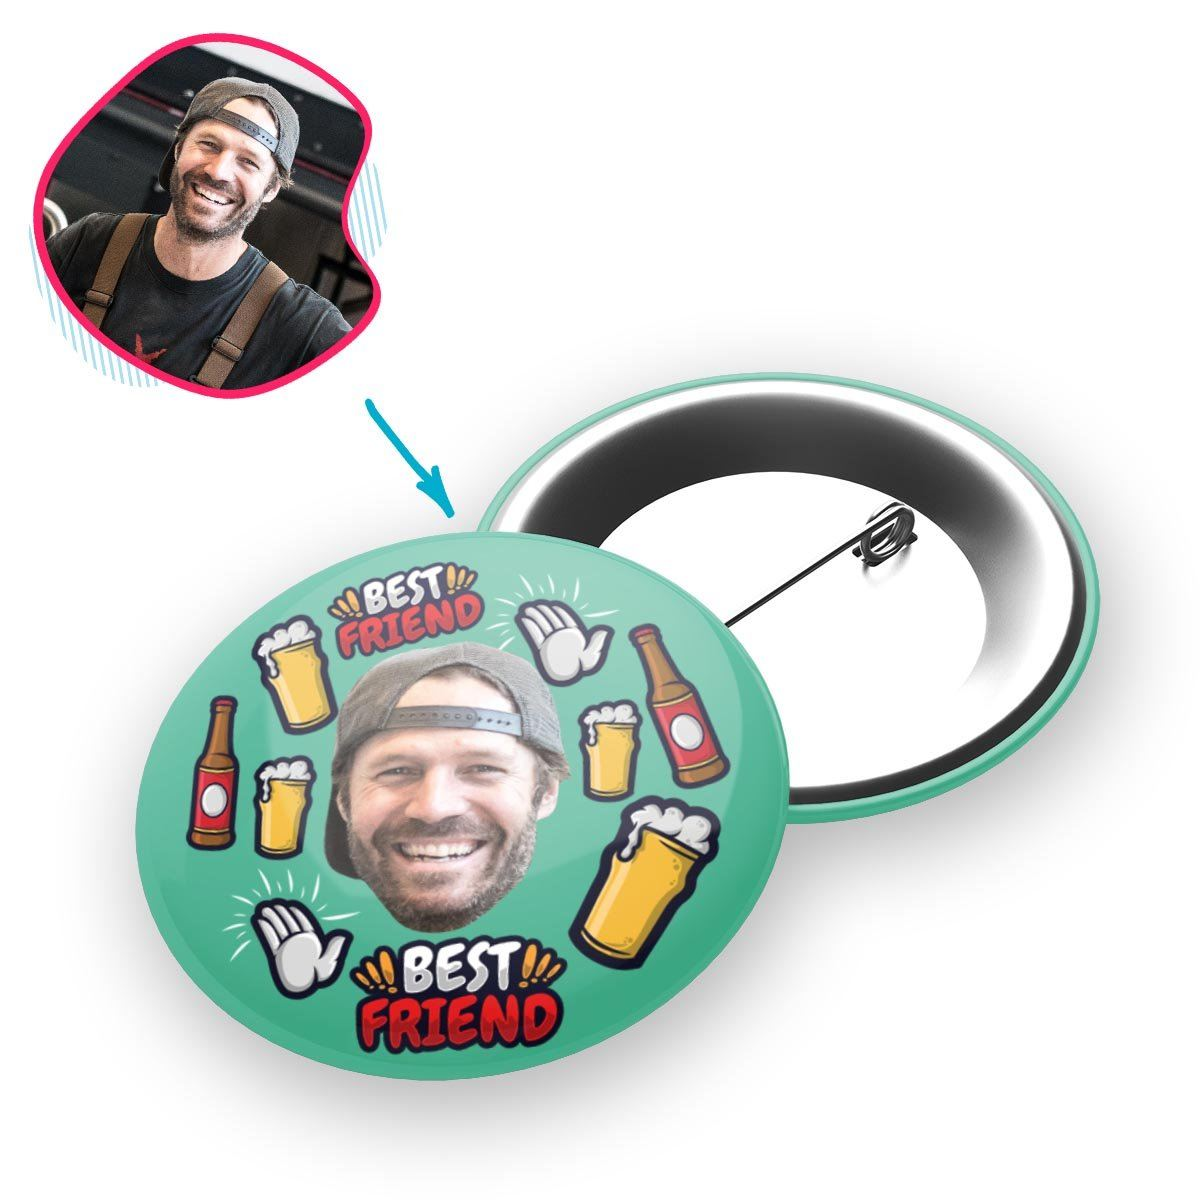 mint BFF for Him pin personalized with photo of face printed on it